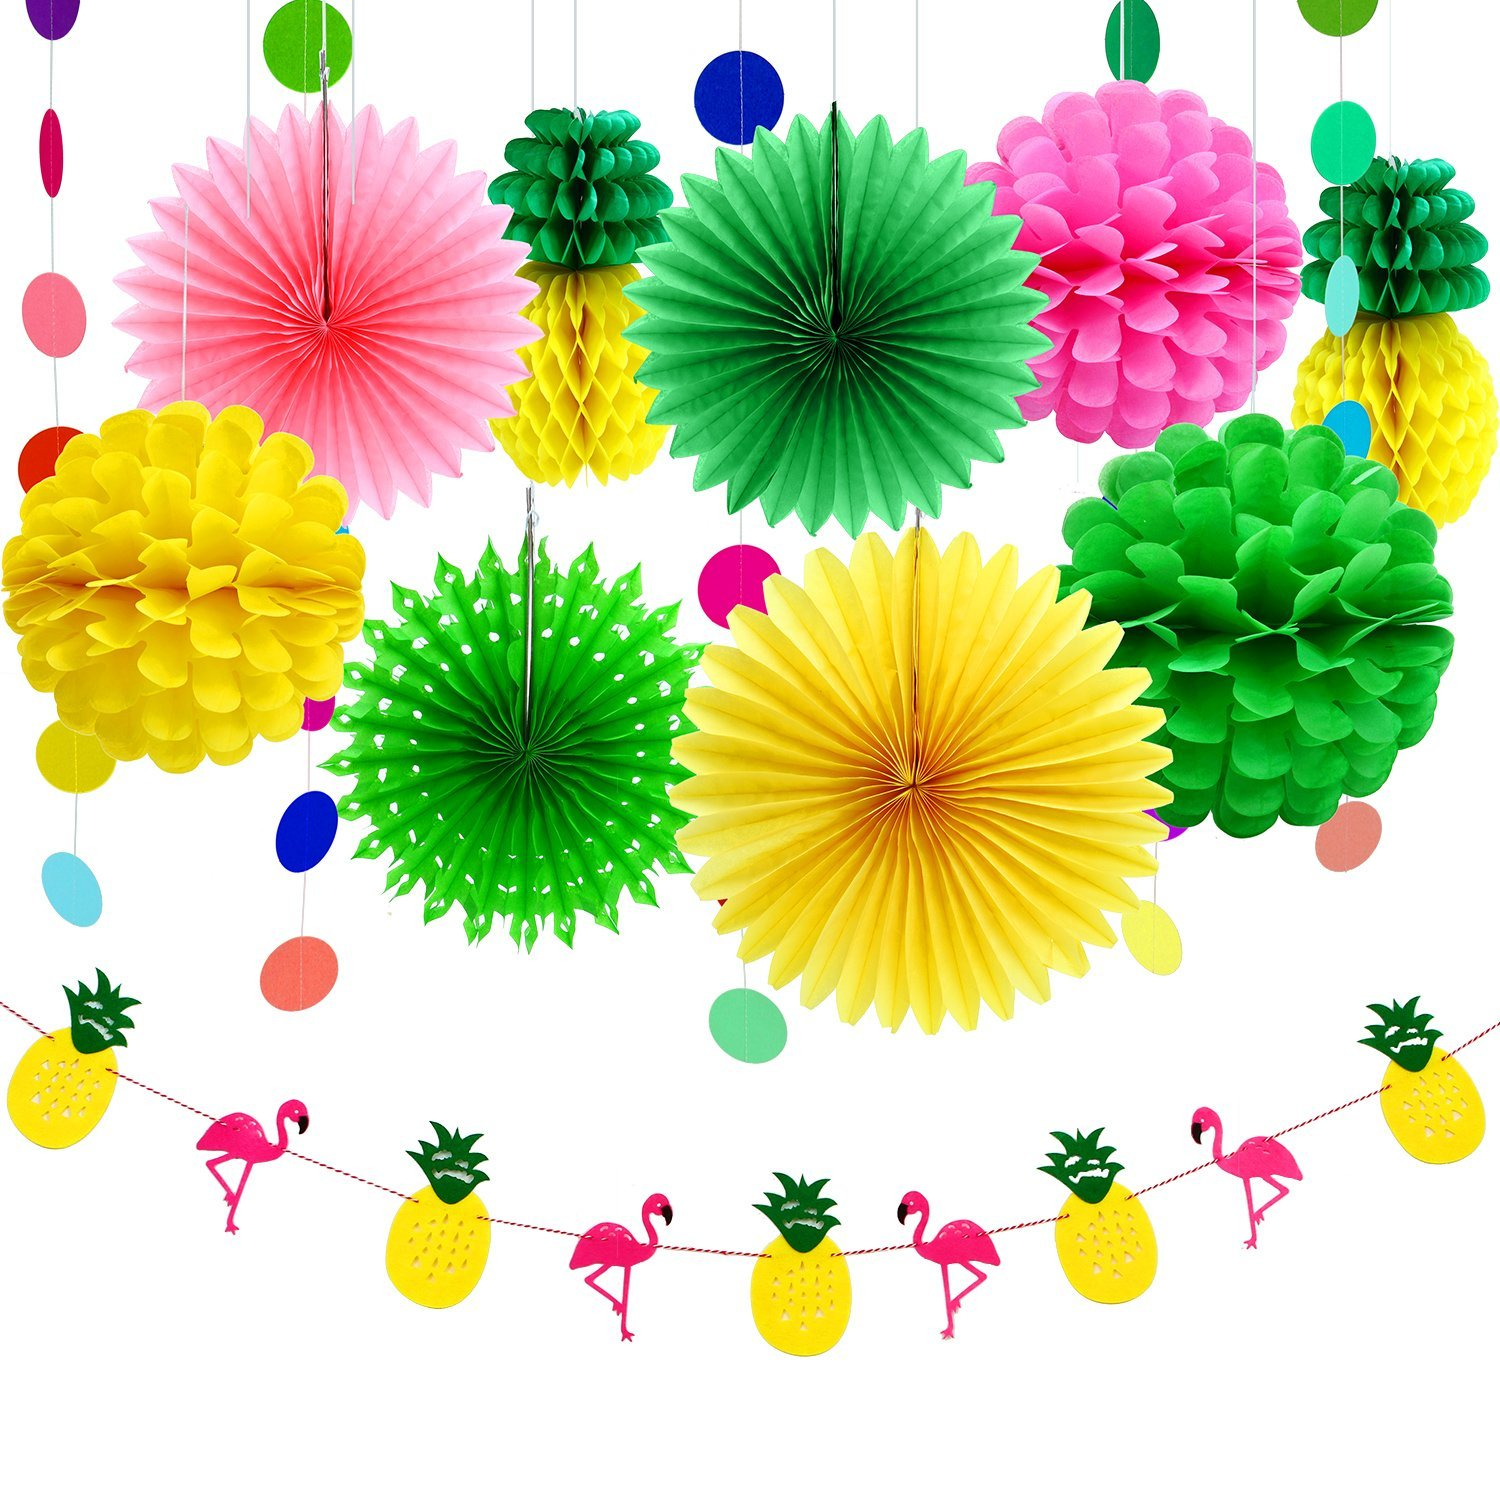 Aneco 11 Pieces Summer Party Decoration Kit Tissue Pineapples Paper Pom Poms Flowers Tissue Paper Fan Polka Dot Paper Garland Flamingo Pineapple Banners for Hawaiian Summer Luau Party